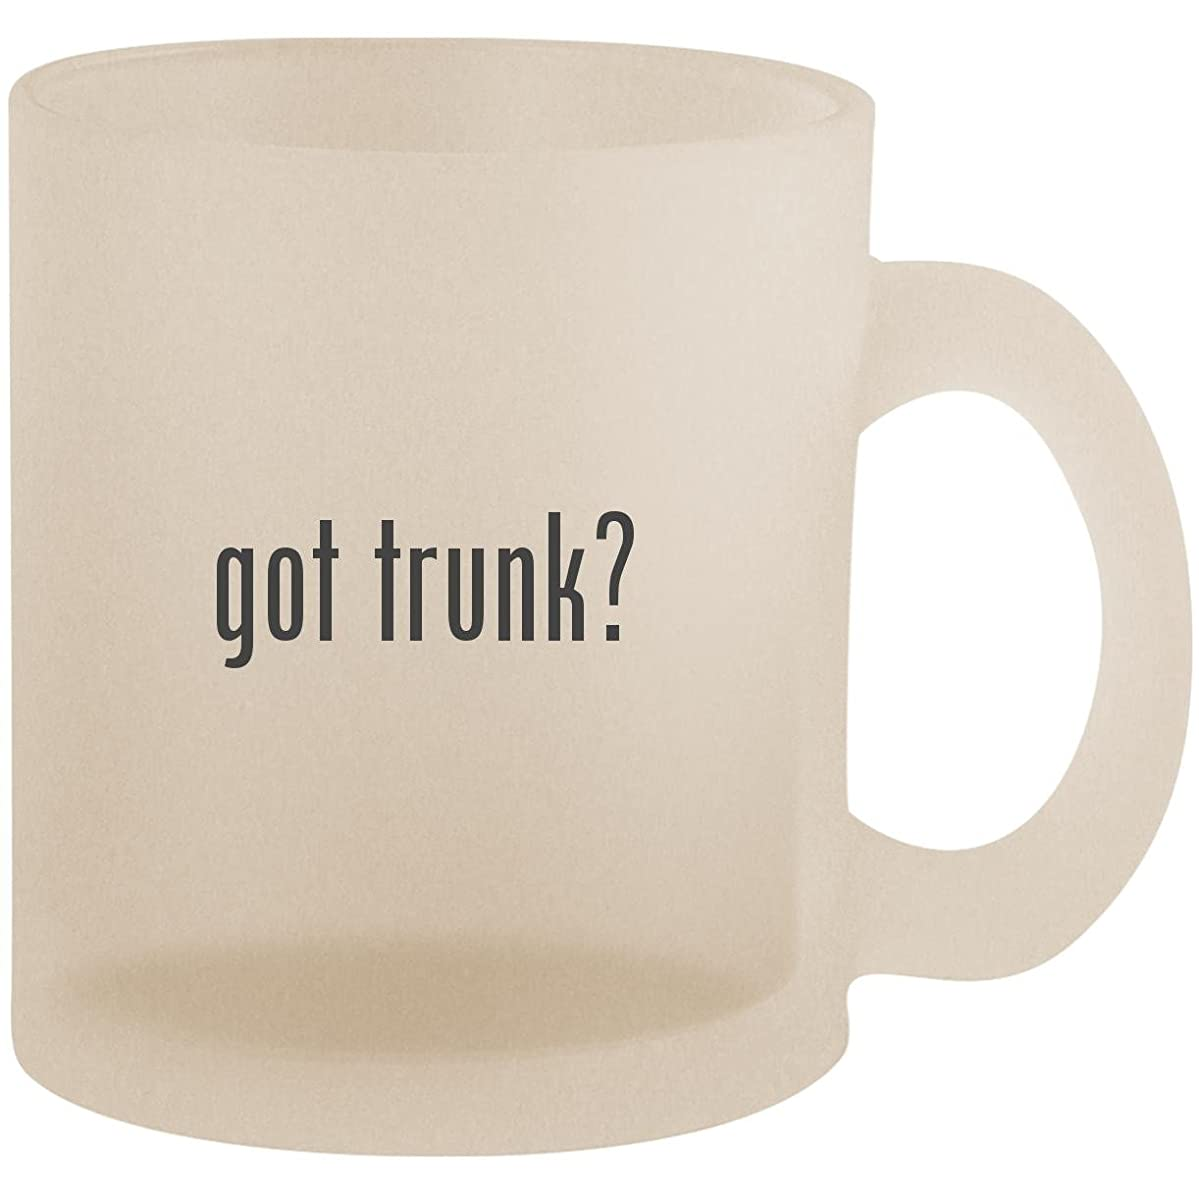 got trunk? - Frosted 10oz Glass Coffee Cup Mug